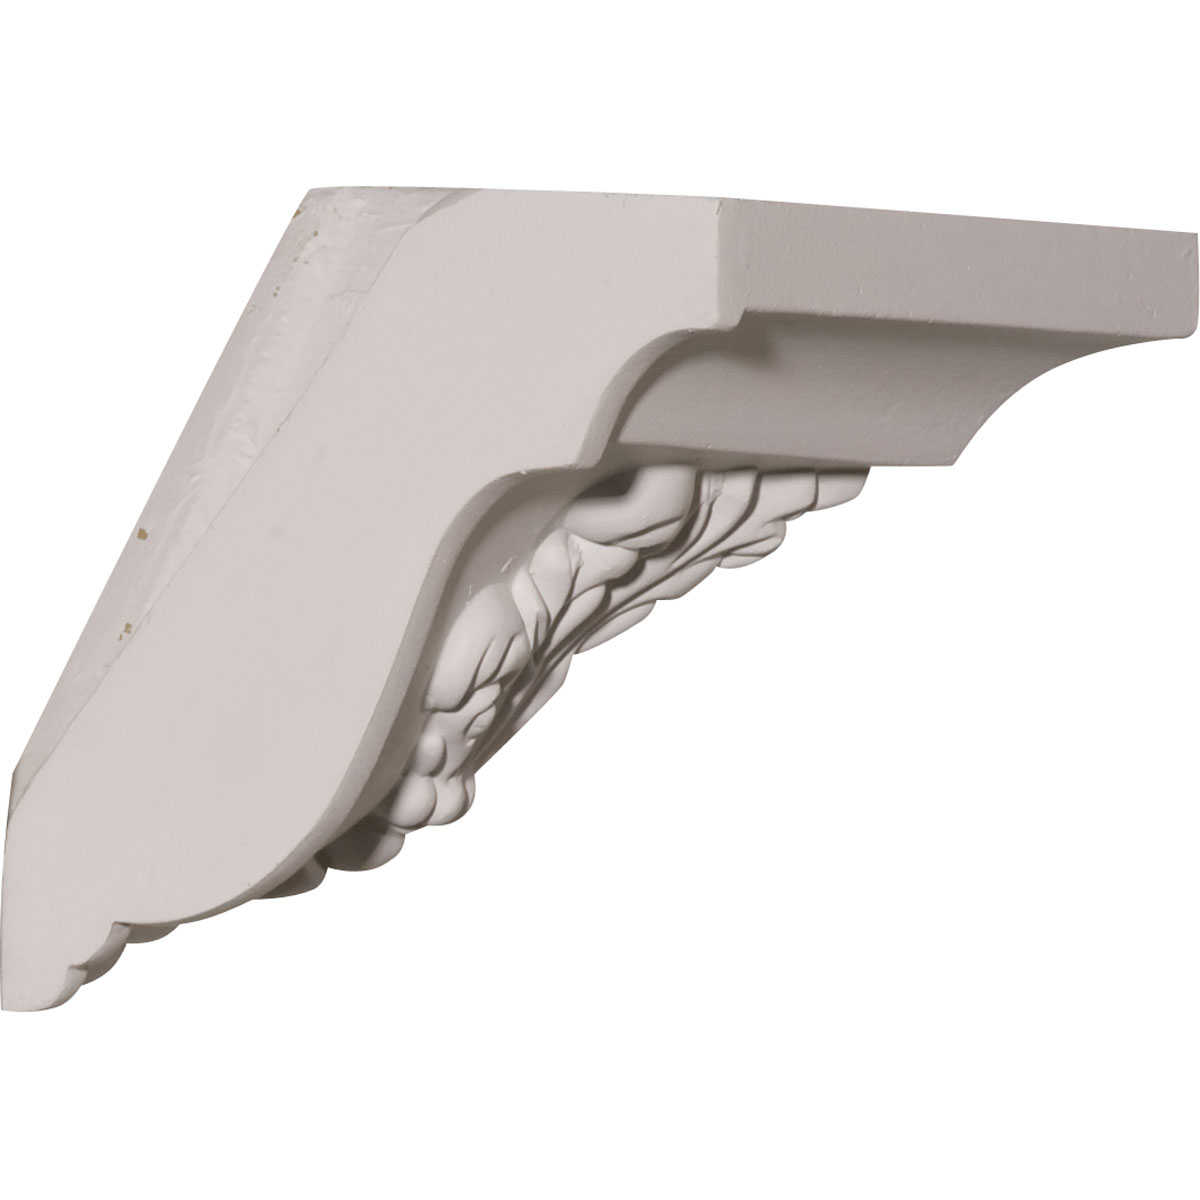 Ekena Millwork 4 3/4''H x 4 5/8''D Outside Corner for Moulding Profiles